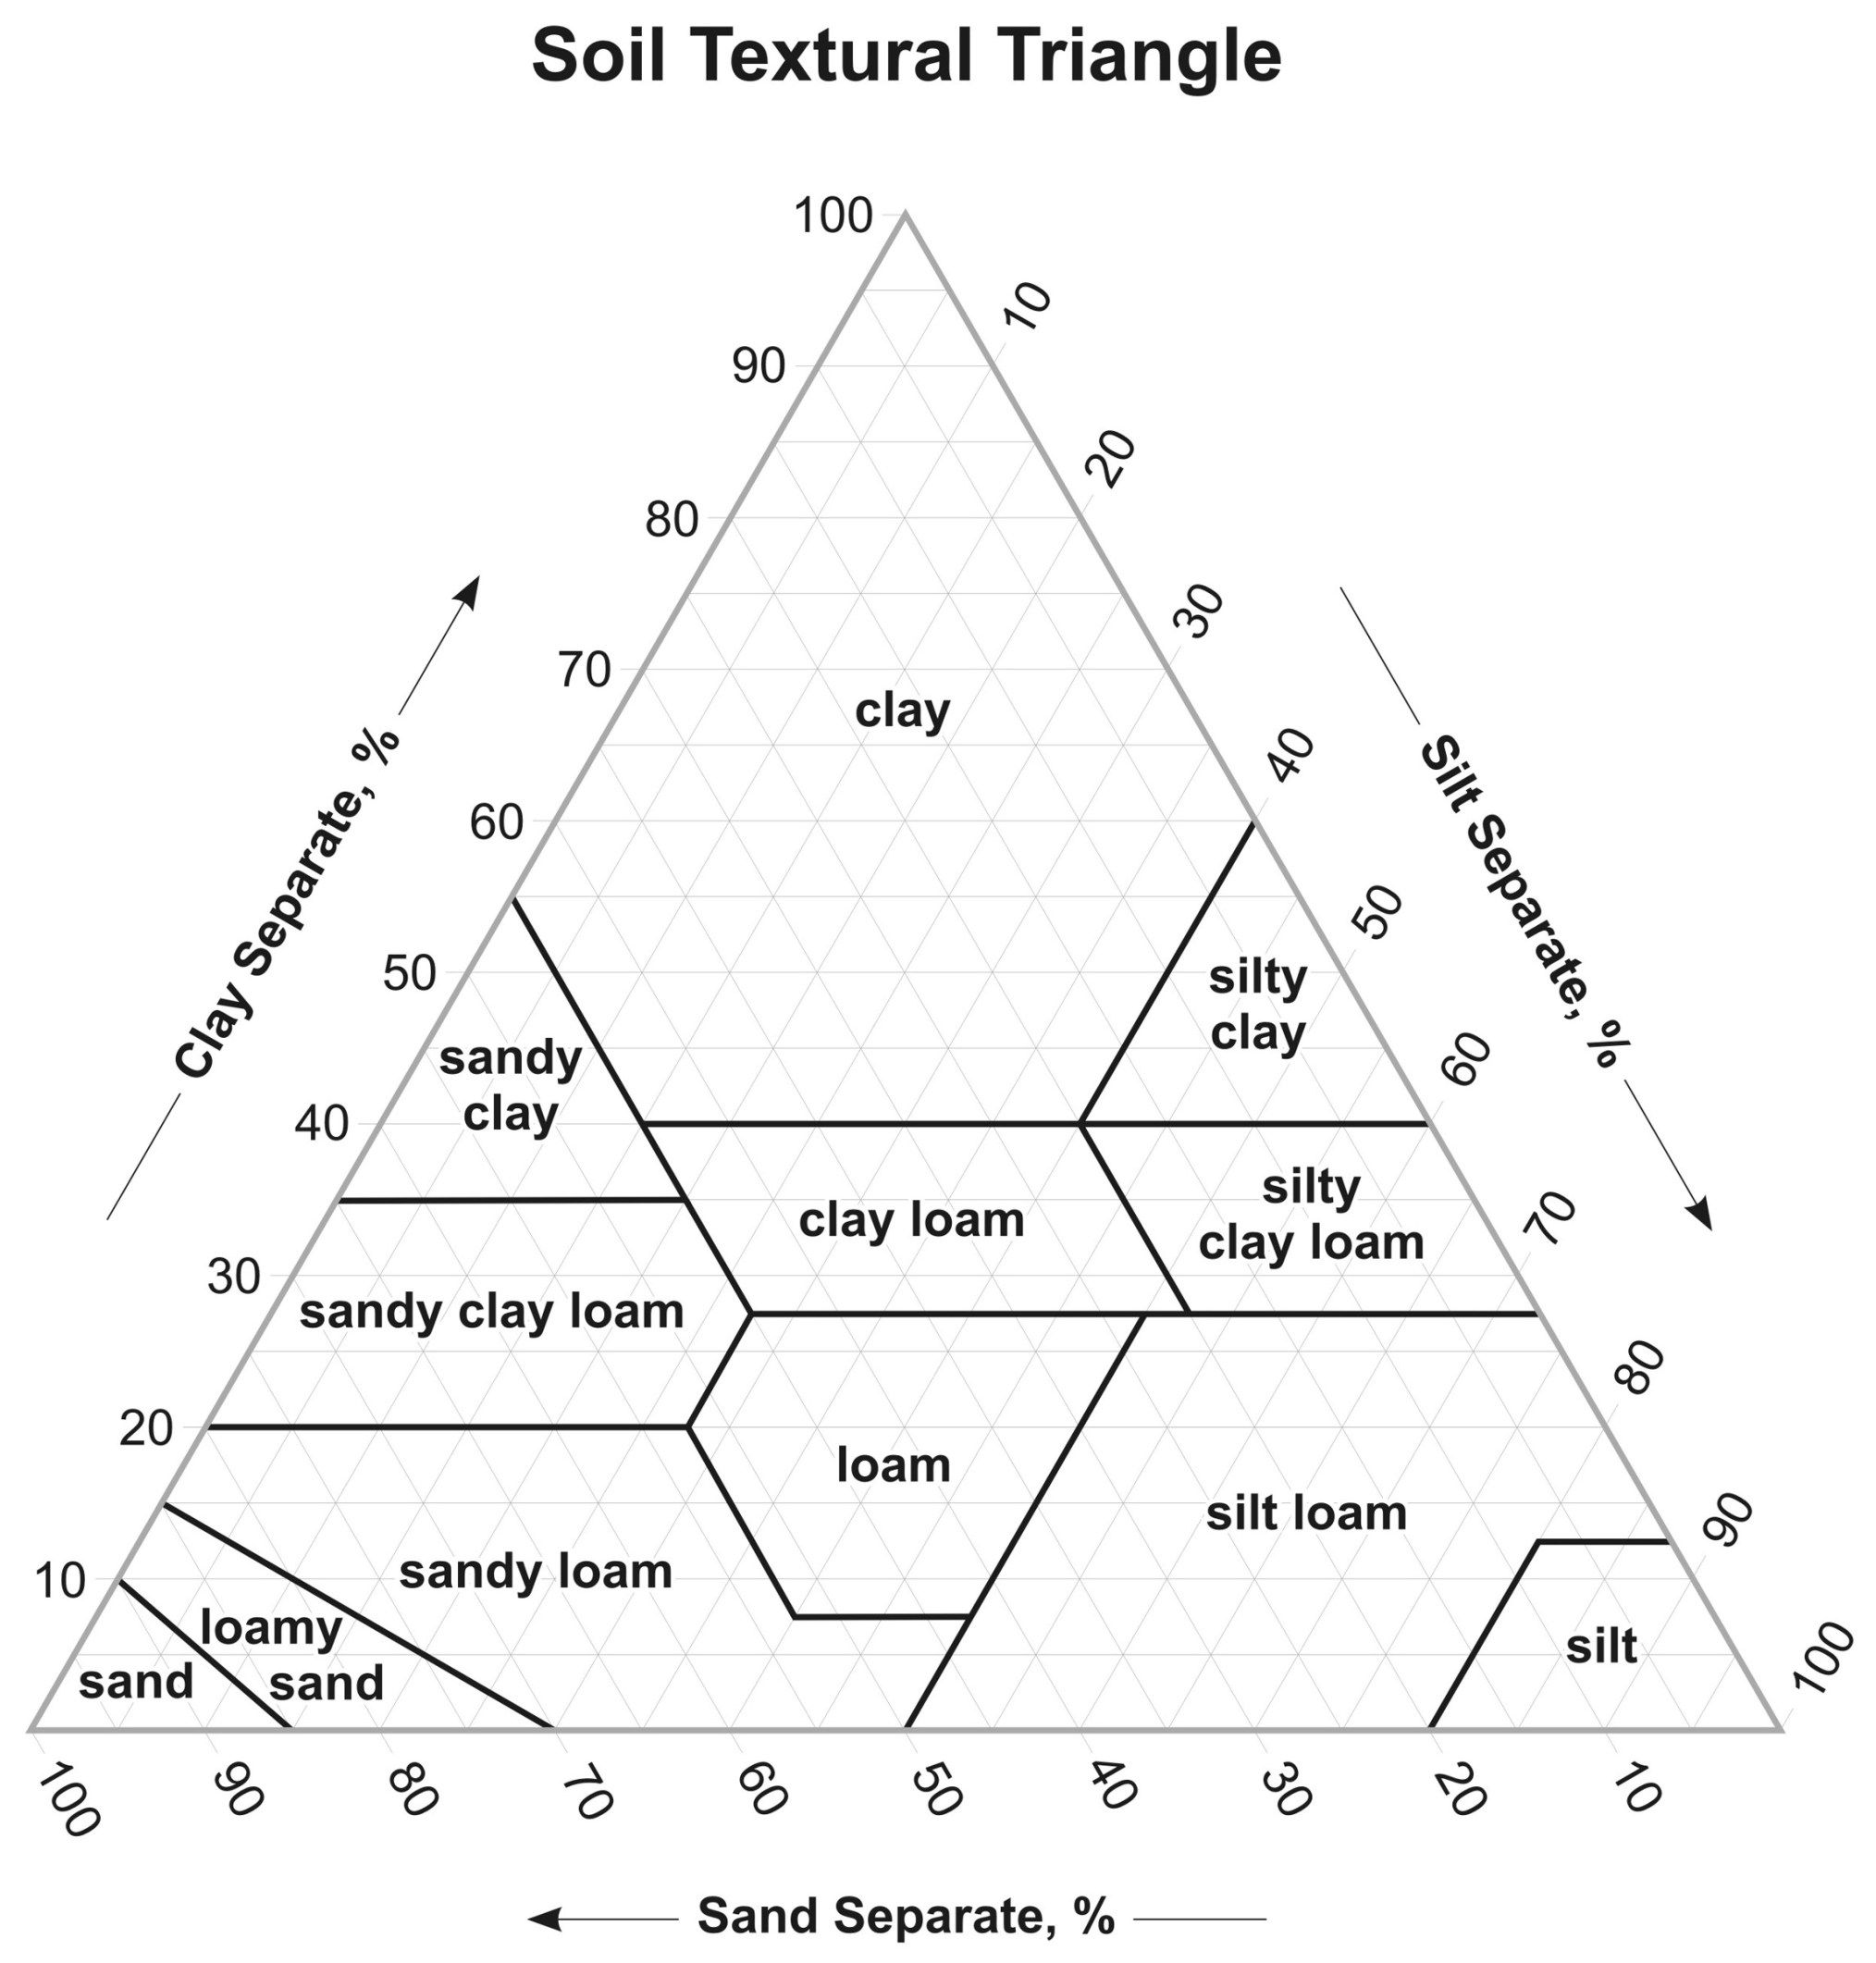 Soil Texture Triangle